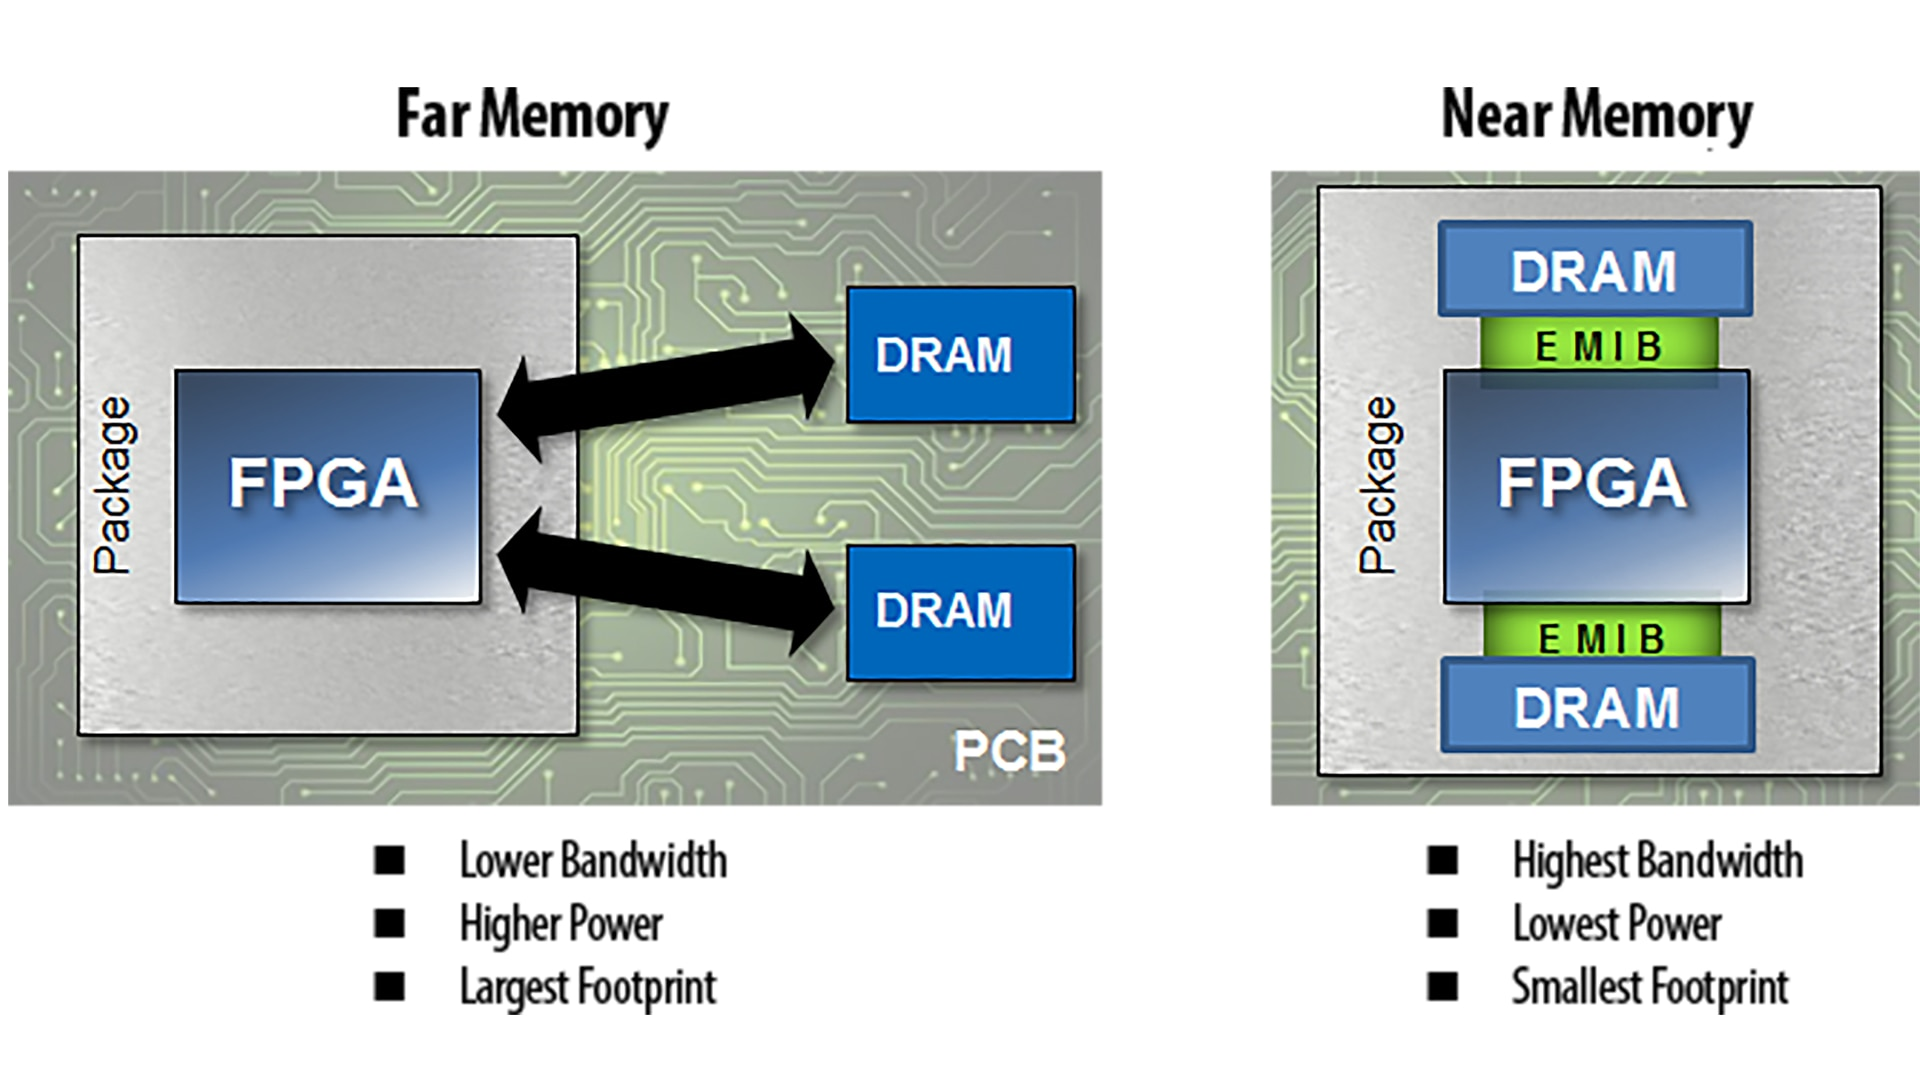 FPGAs with near memory in package